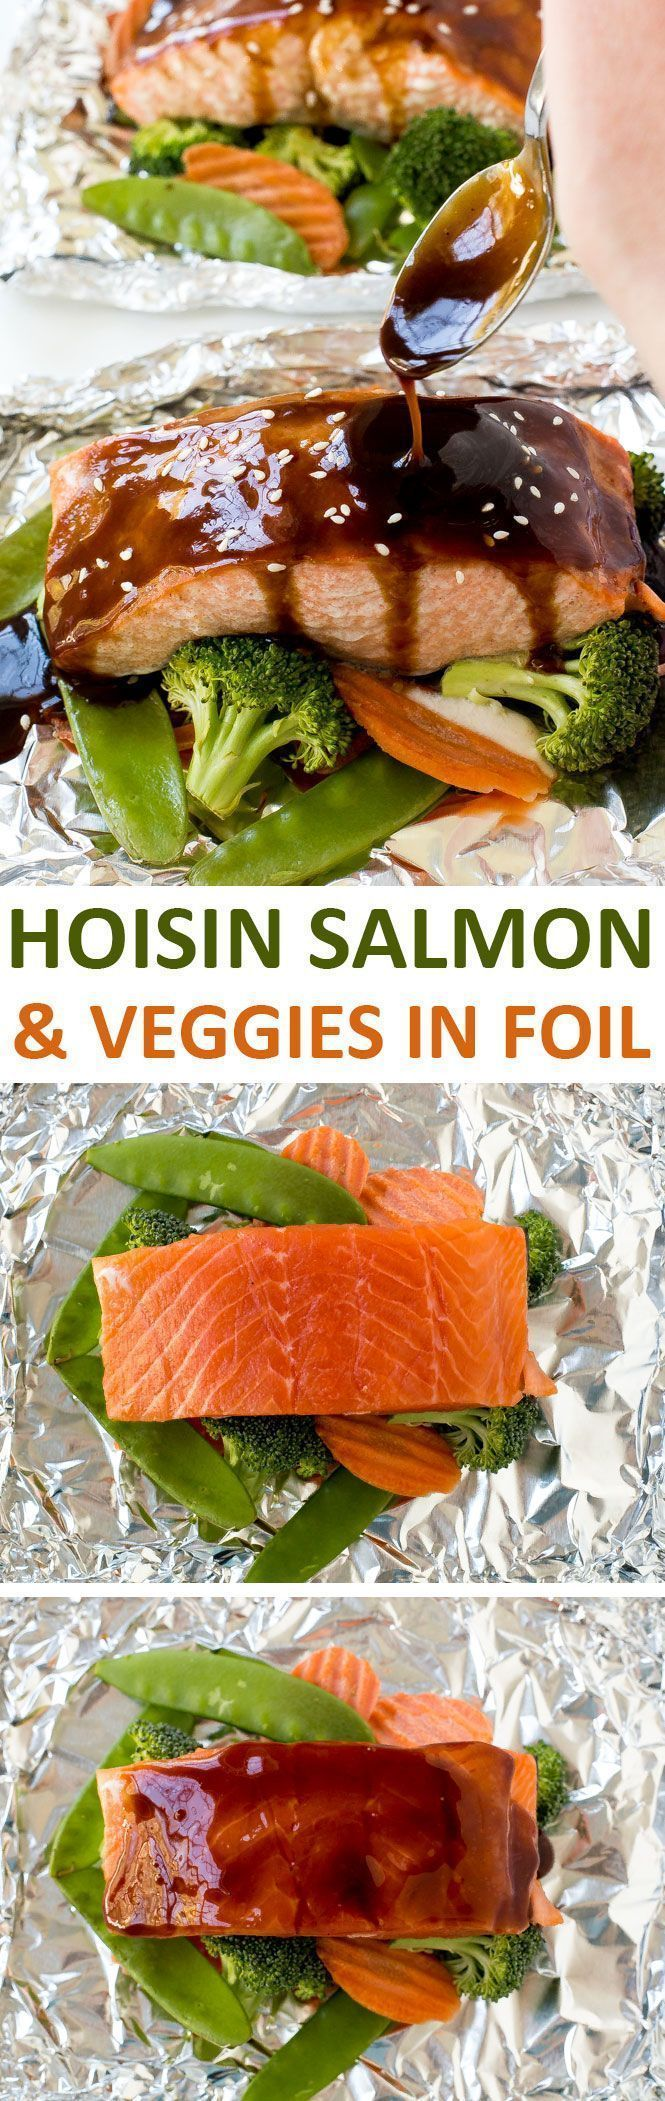 Hoisin Glazed Salmon and Veggies in foil baked to perfection and drizzled with…